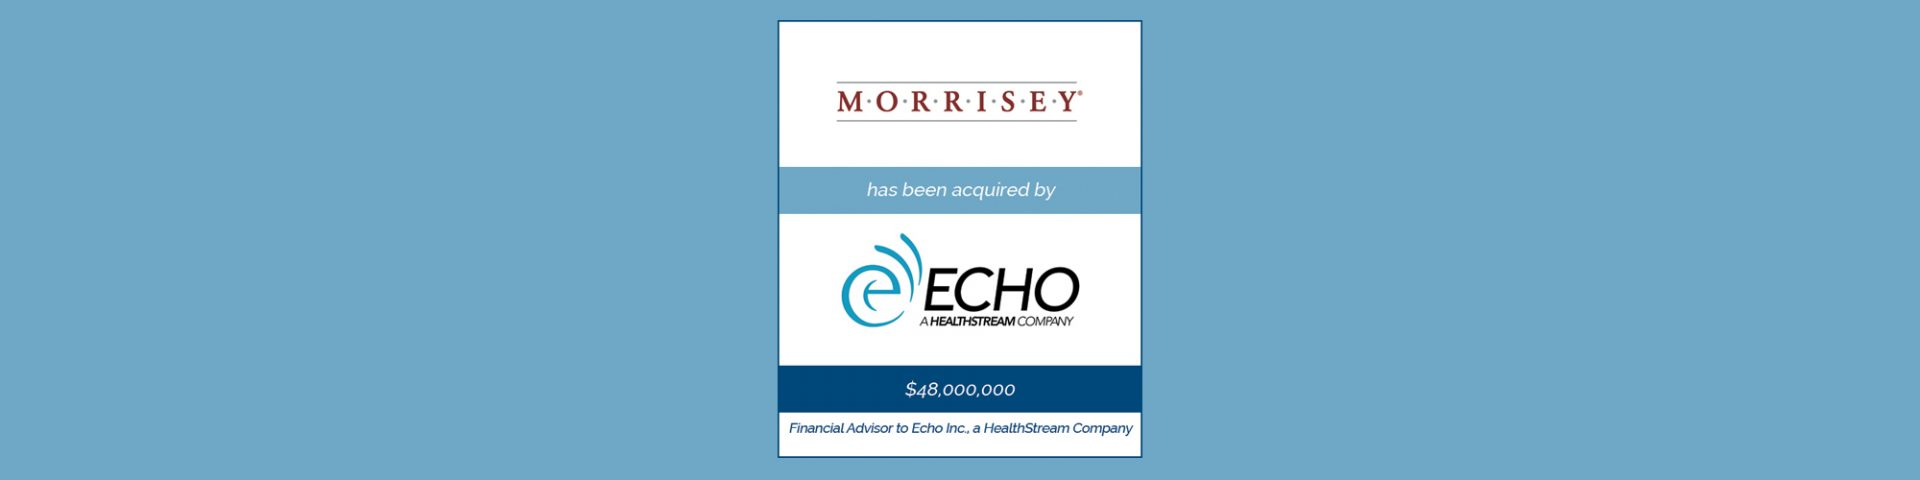 HealthStream Acquires Morrisey Associates | Bailey Southwell & Co.